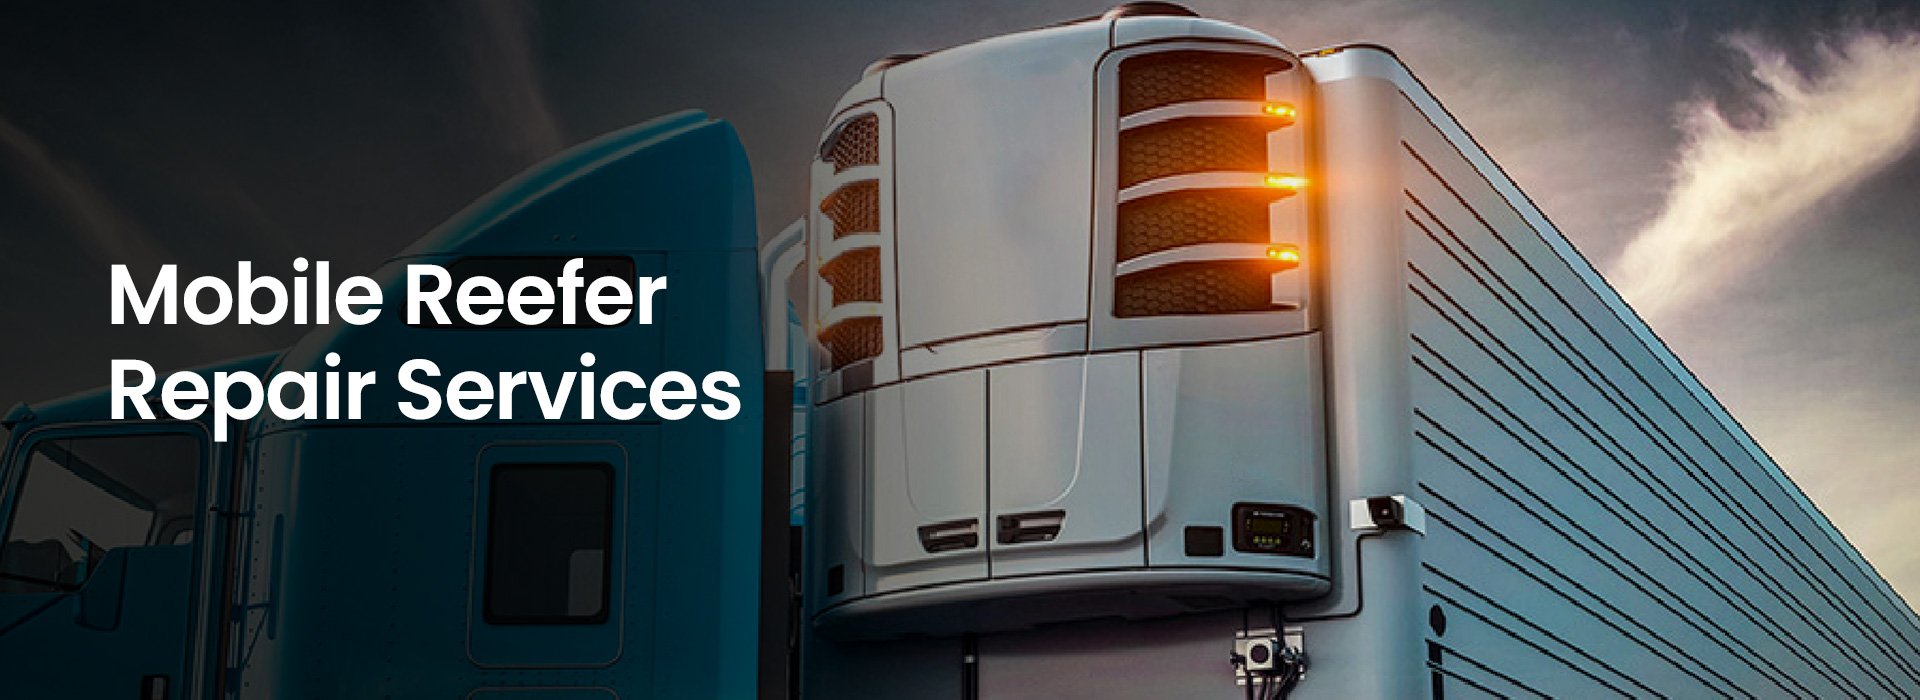 mobile reefer repair services